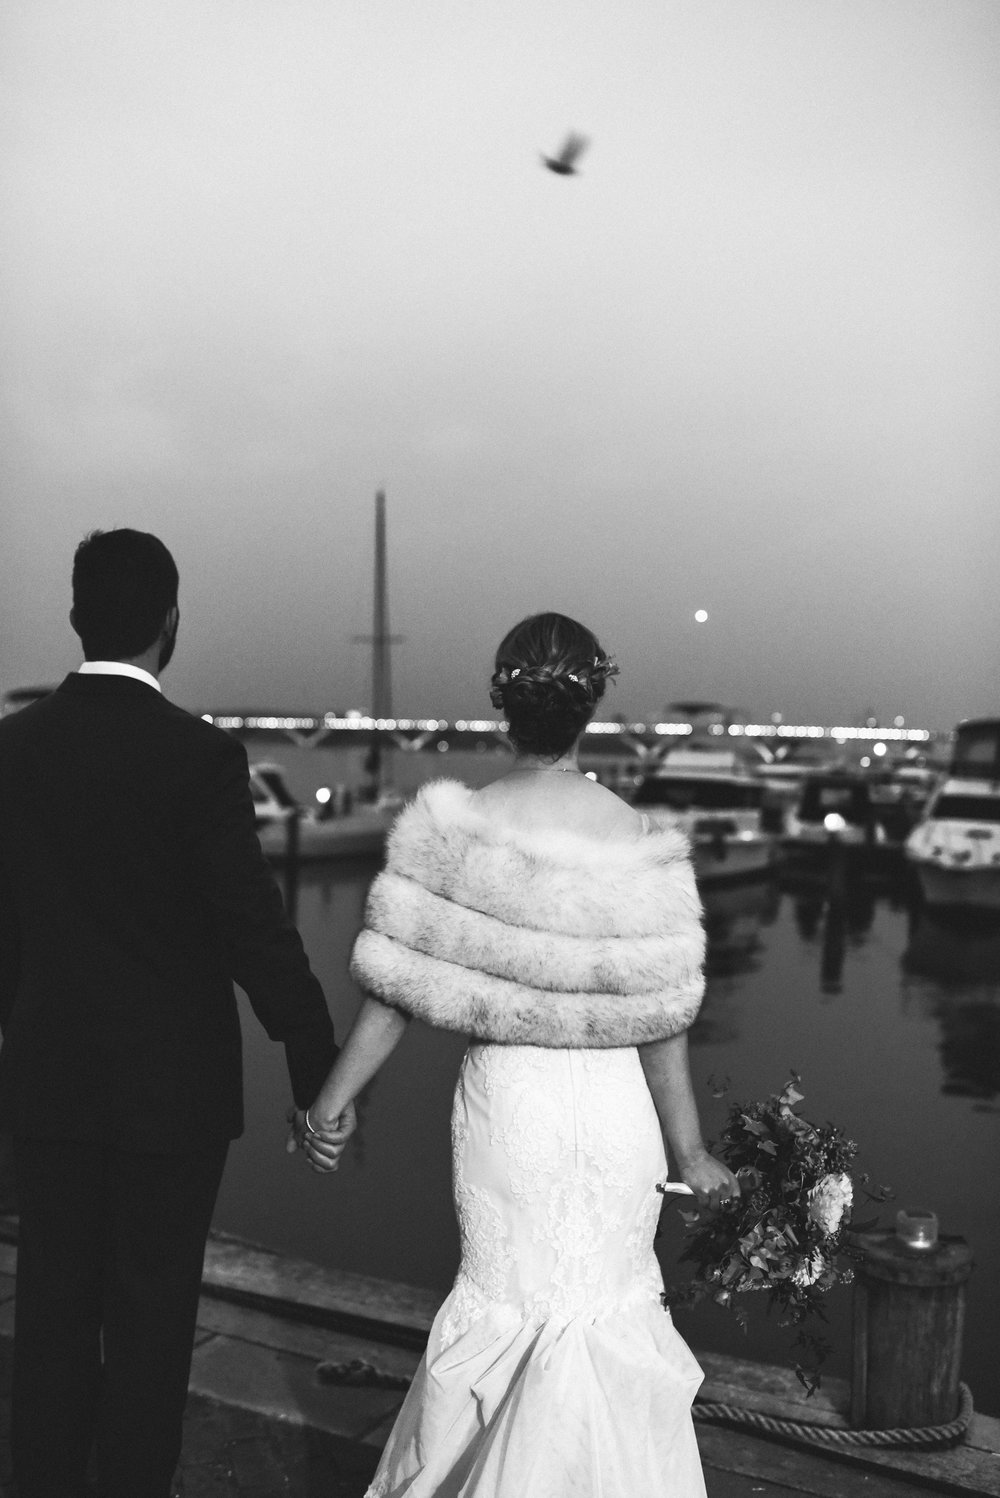 Alexandria, DC, Harbor, The London Bob Hair Design, Lian Carlo Wedding Dress, Bride and Groom, Black and White Photo, Evening Wedding, City Wedding,